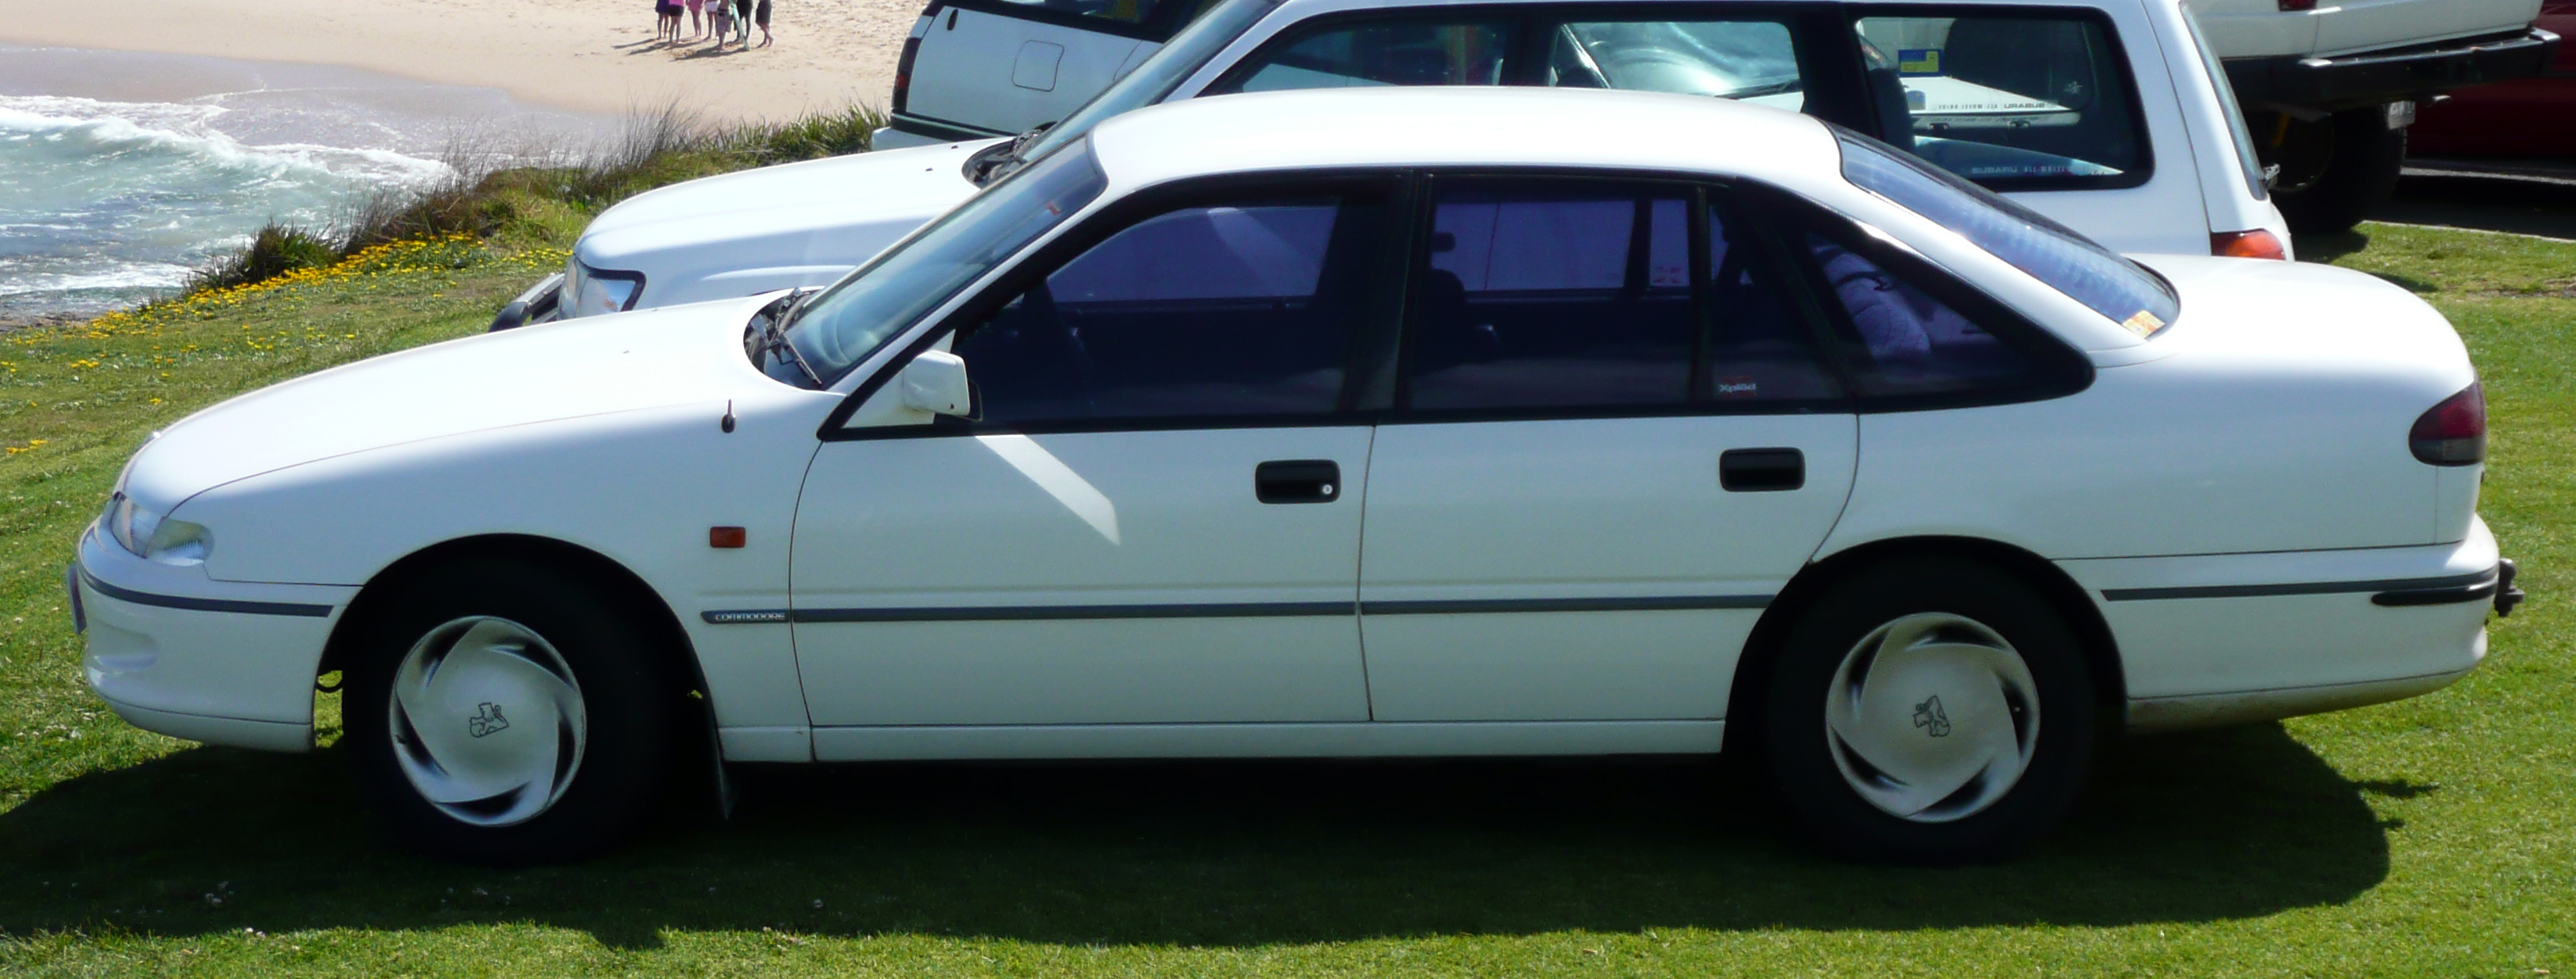 Pictures of holden caprice 1994 #12